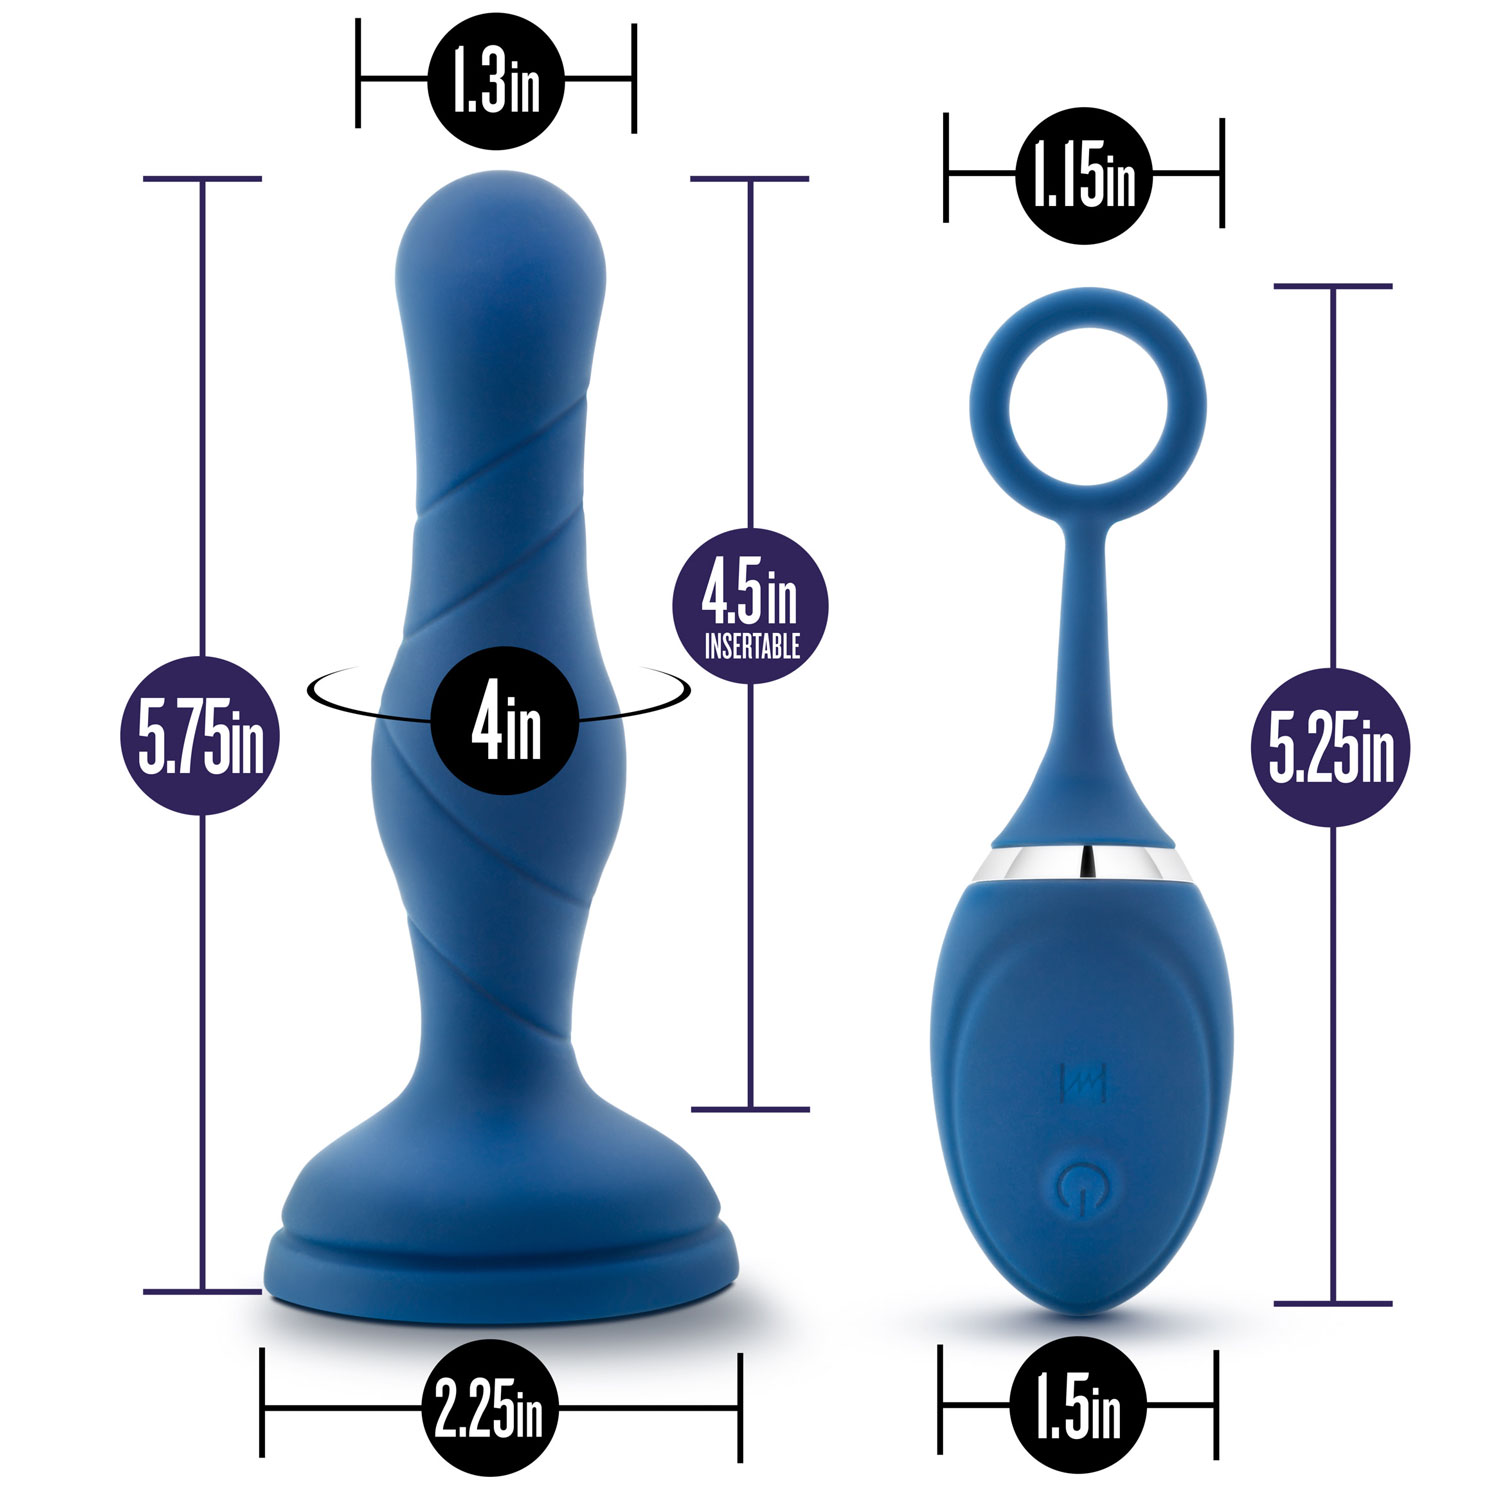 PPerformance Plus Dynamo Rechargeable Silicone Butt Plug - Measurements